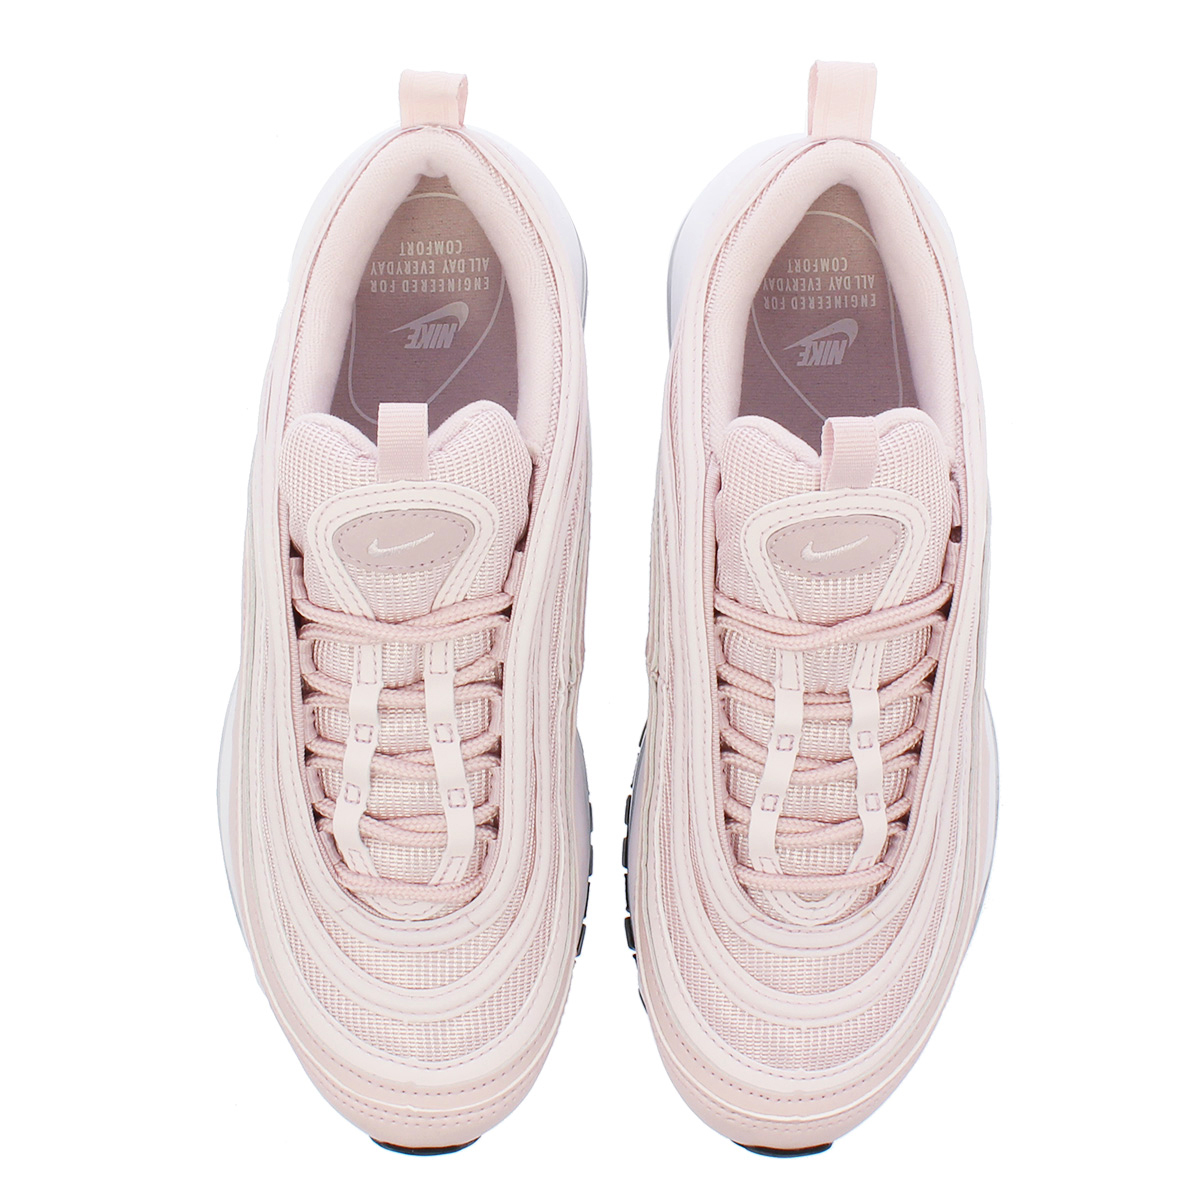 b0a73b8d356 SELECT SHOP LOWTEX  NIKE WMNS AIR MAX 97 Nike women Air Max 97 ...